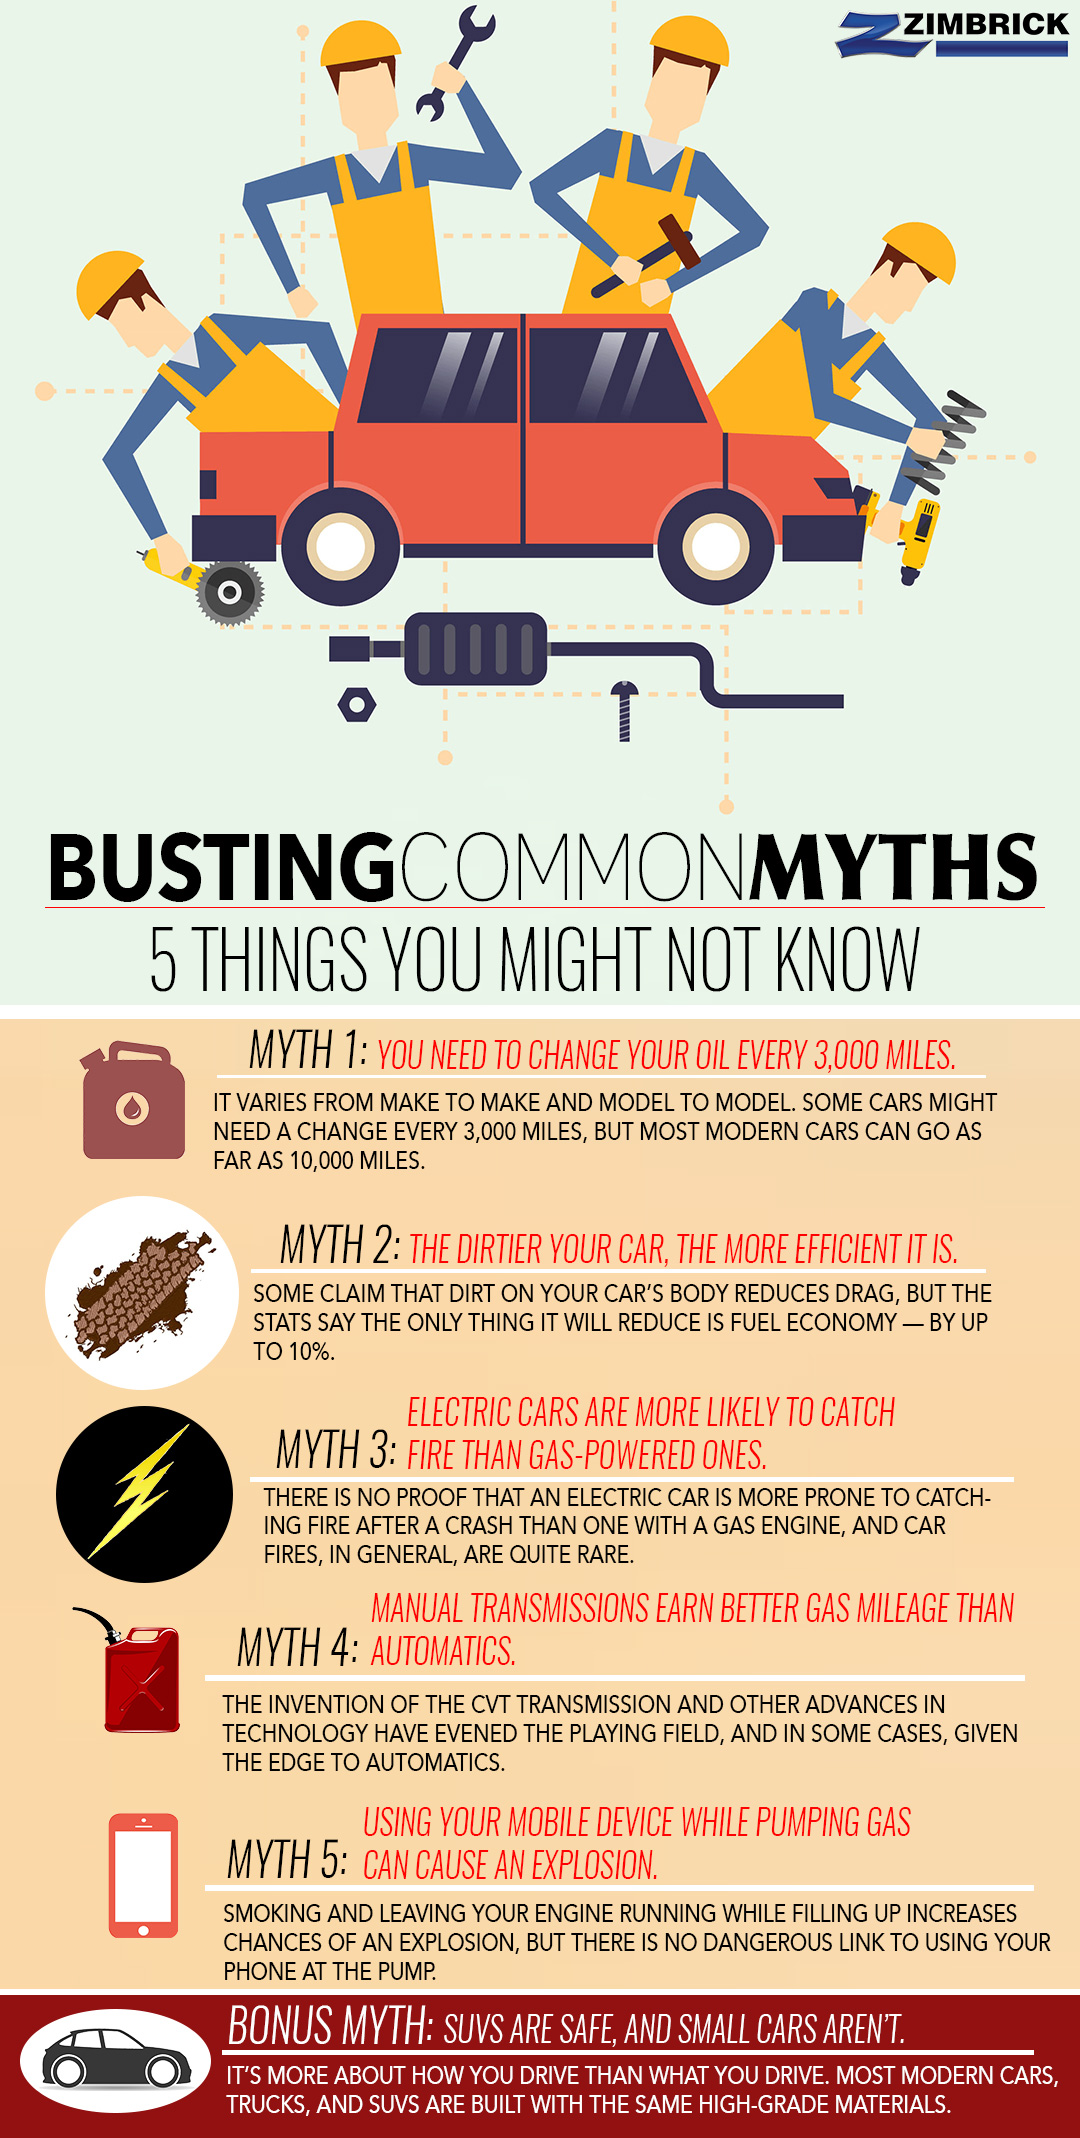 Do You Know Where Your Car Is Madisons >> Common Car Myths Debunked 5 Things You Might Not Know